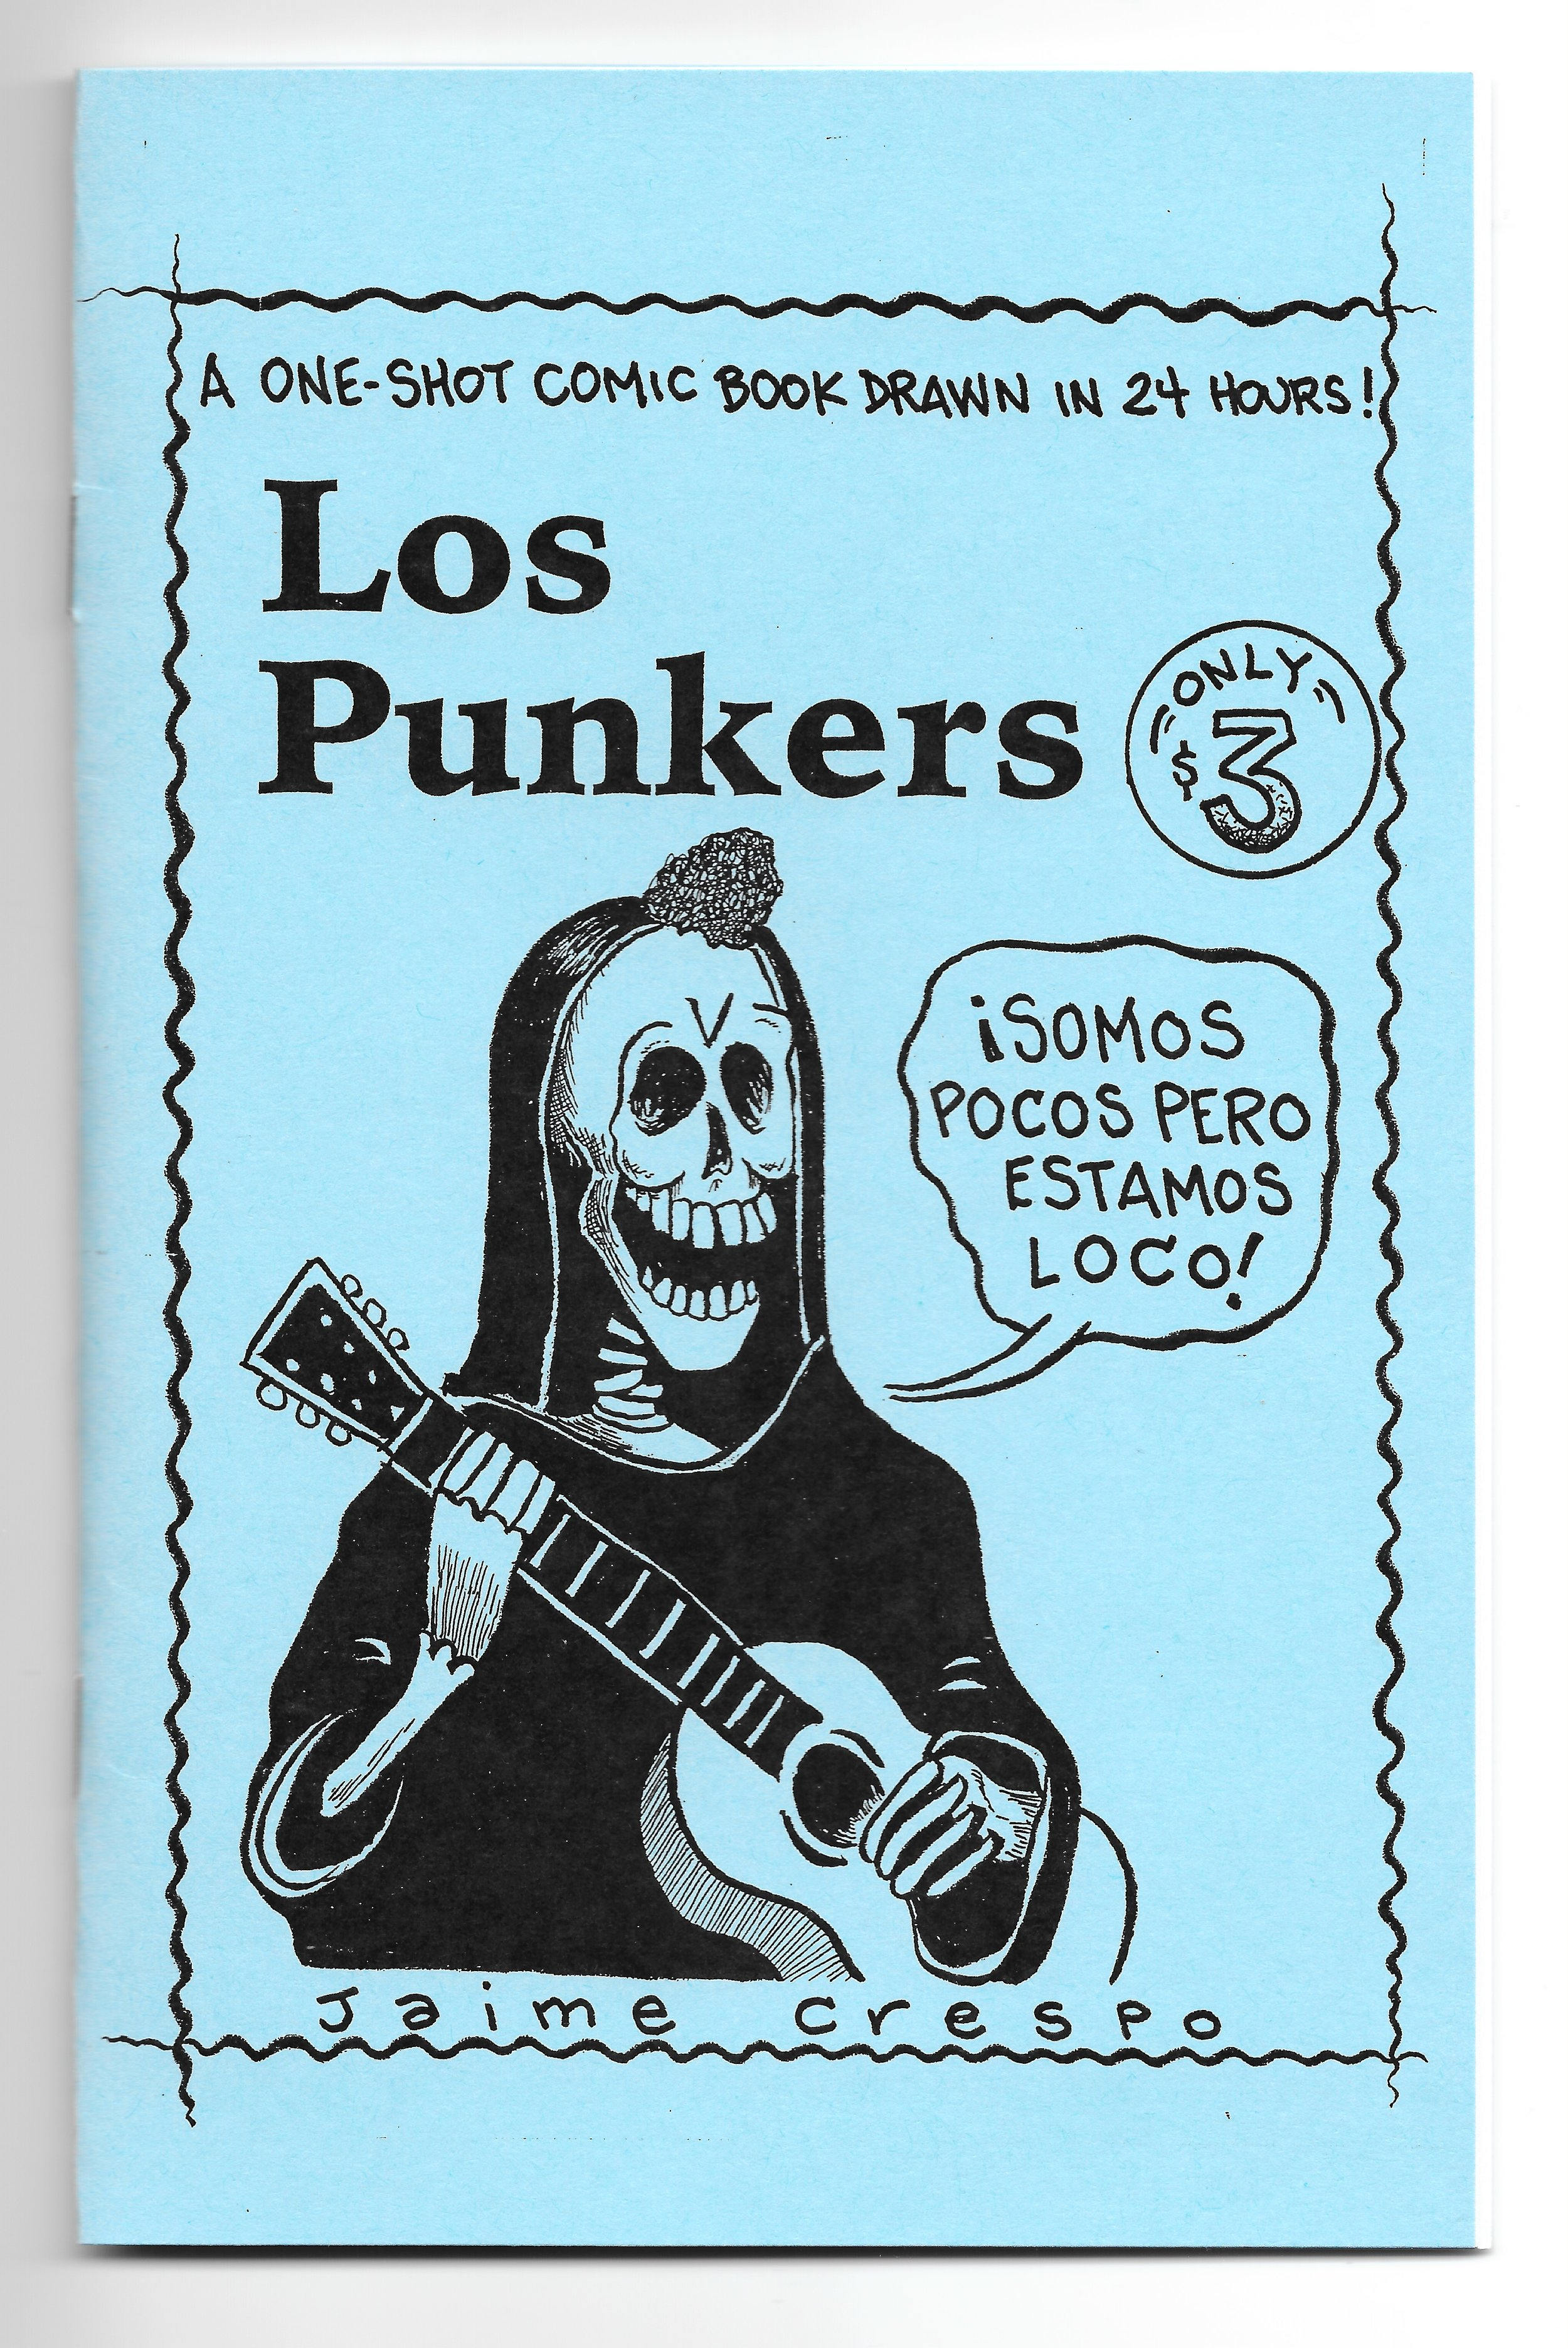 Los Punkers - Drawn about six/seven years ago at one of those 24 hour Comic Book events where you show up and have 24 hours to write, pencil and ink an entire 24 page comic book (minus the cover). I was at a loss on what to draw but managed to figure something out and complete the project in around 22 hours...I swear I'll never do that again. The story in this book takes place in the late 1970's when I was a junior in high school. My buddy and I decided to start a punk band which where we lived and the given time frame was practically unheard of...though that never stopped us from doing crazy stuff before, so... The bottom line of this story has to do with timing...and our timing was off by a few years. Digest size, card stock cover, 24 pages. $4.50 ppd.